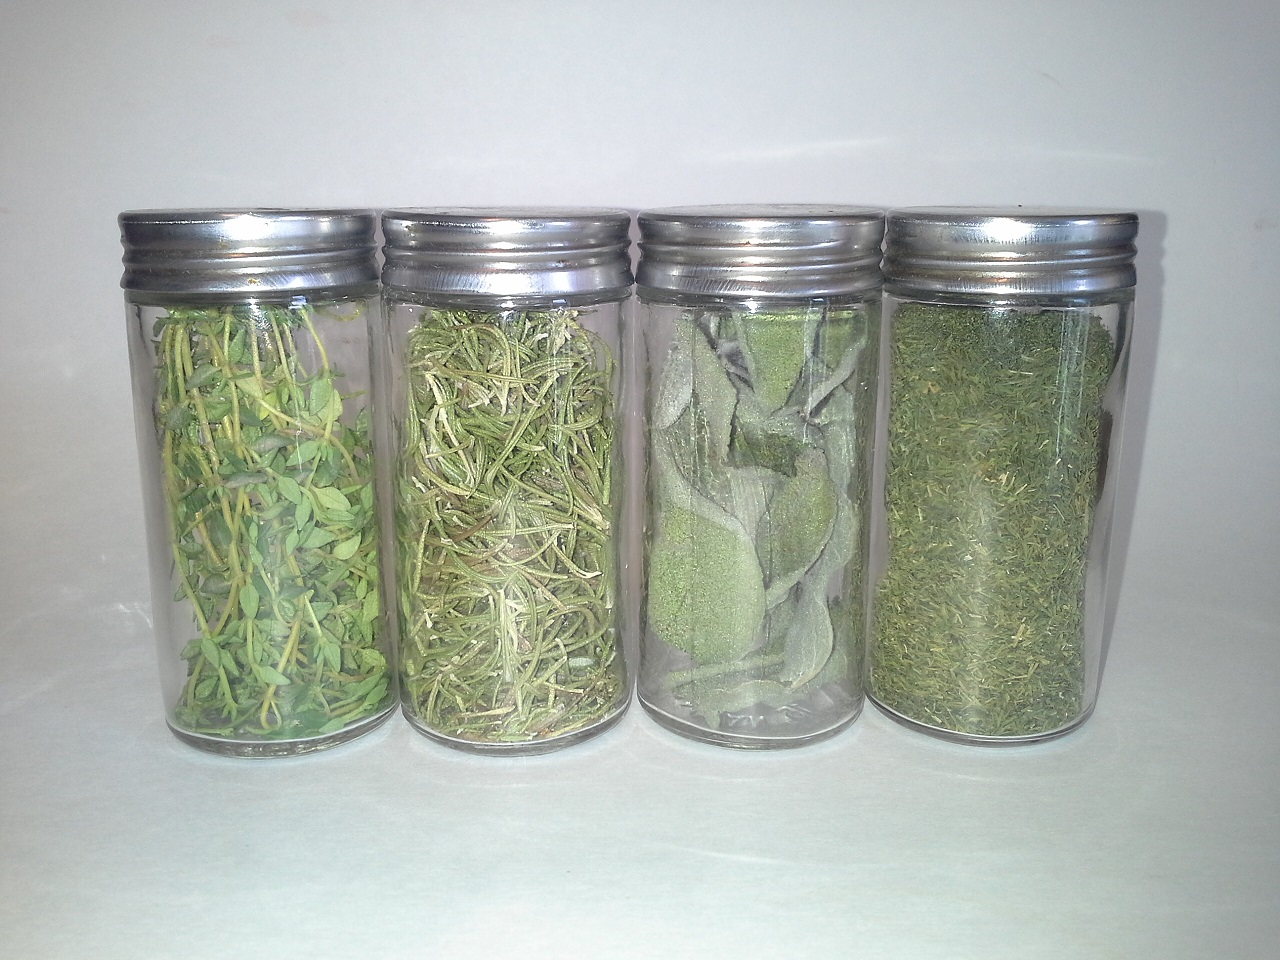 Store dried herbs in airtight containers